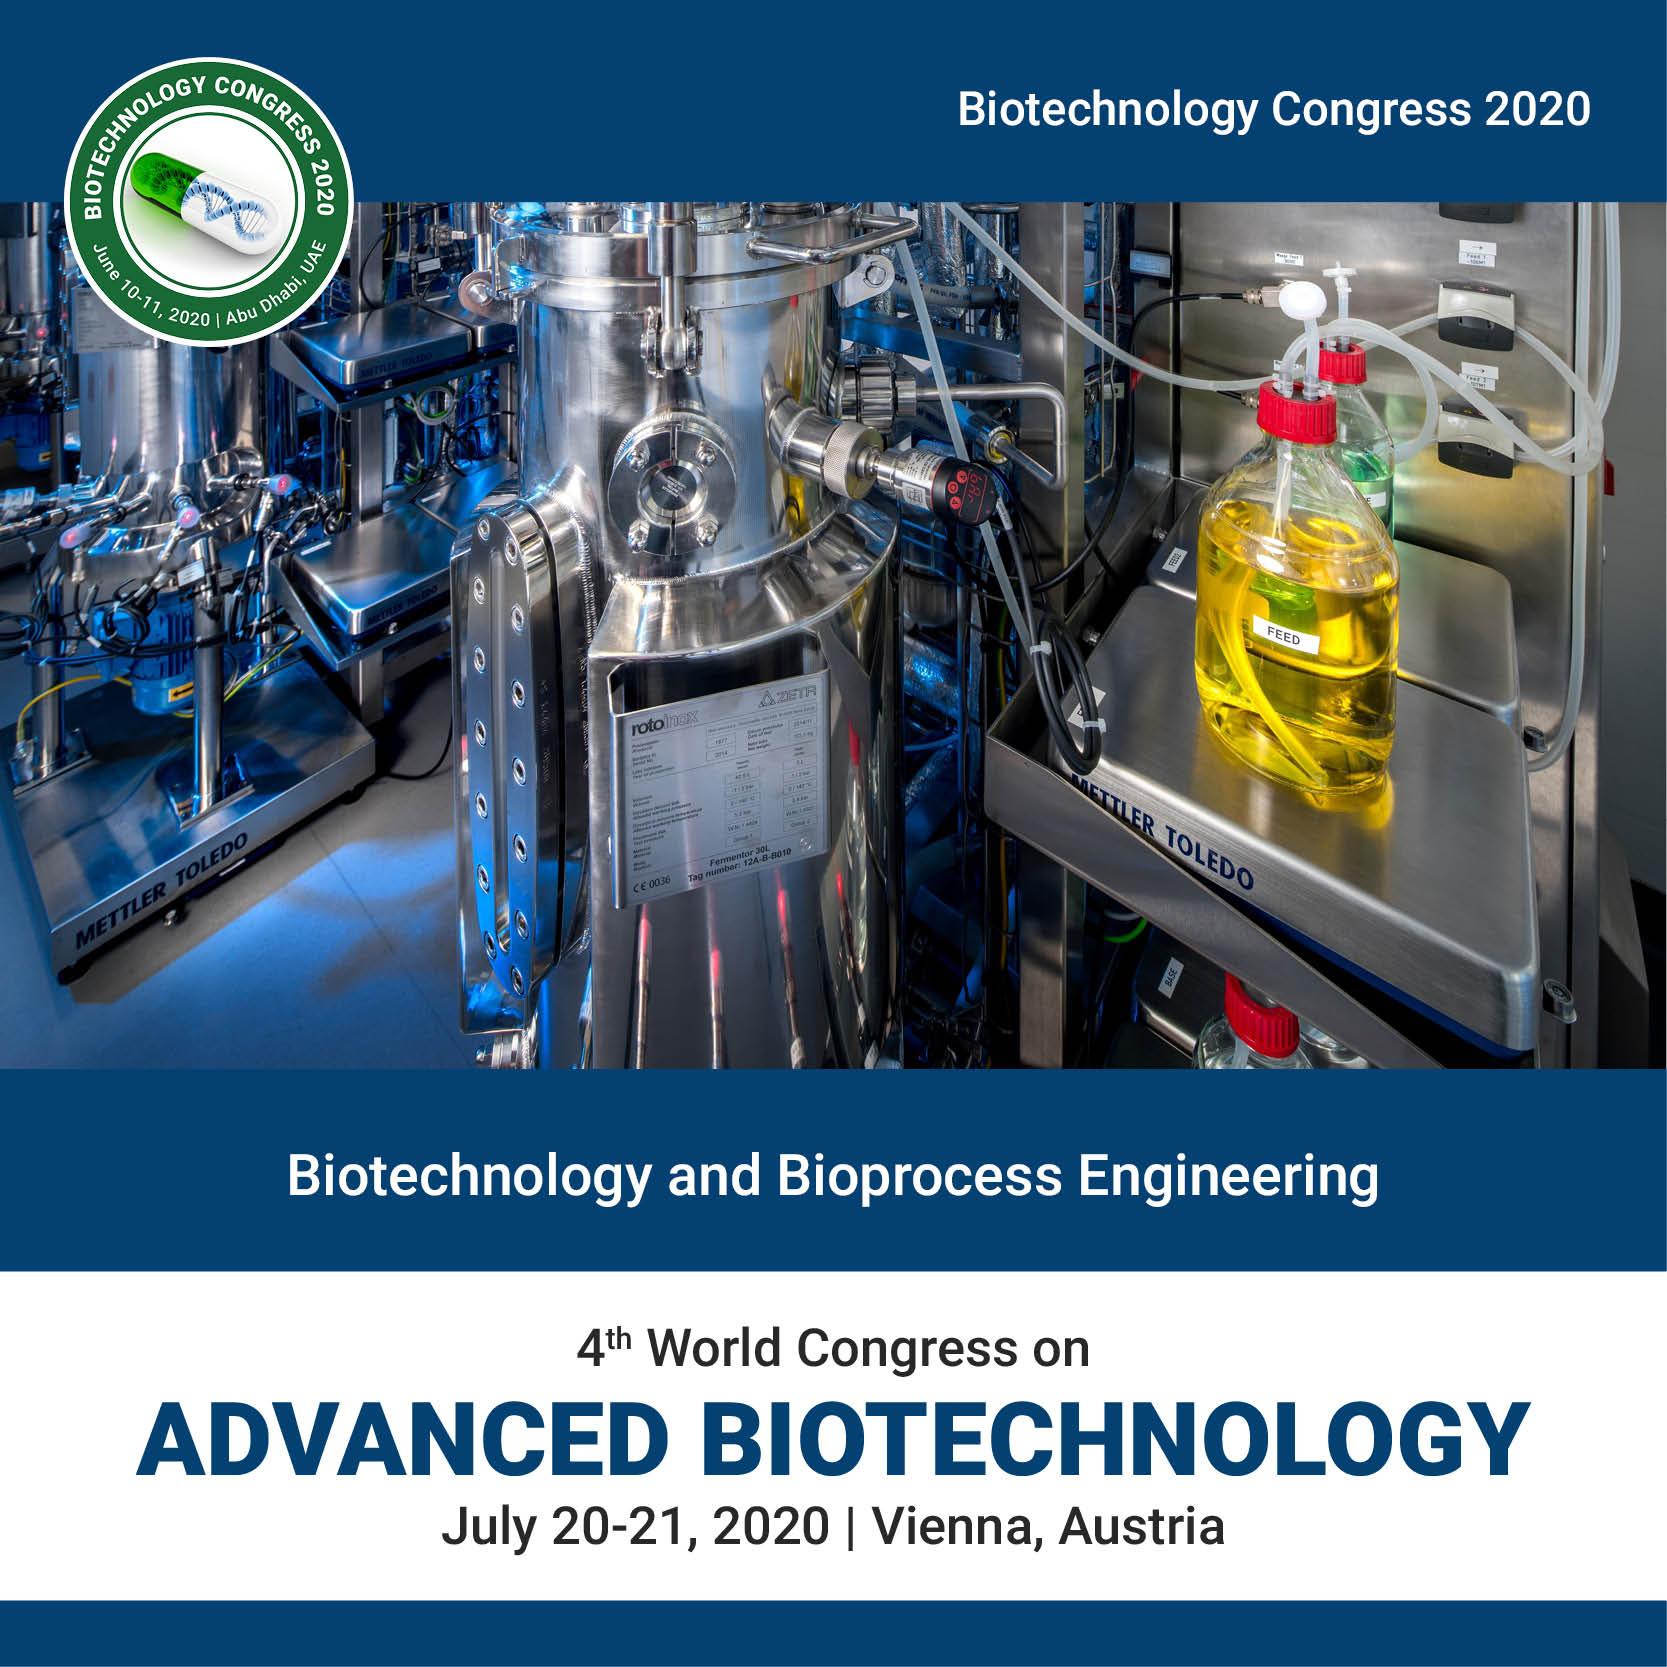 Biotechnology and Bioprocess Engineering Photo